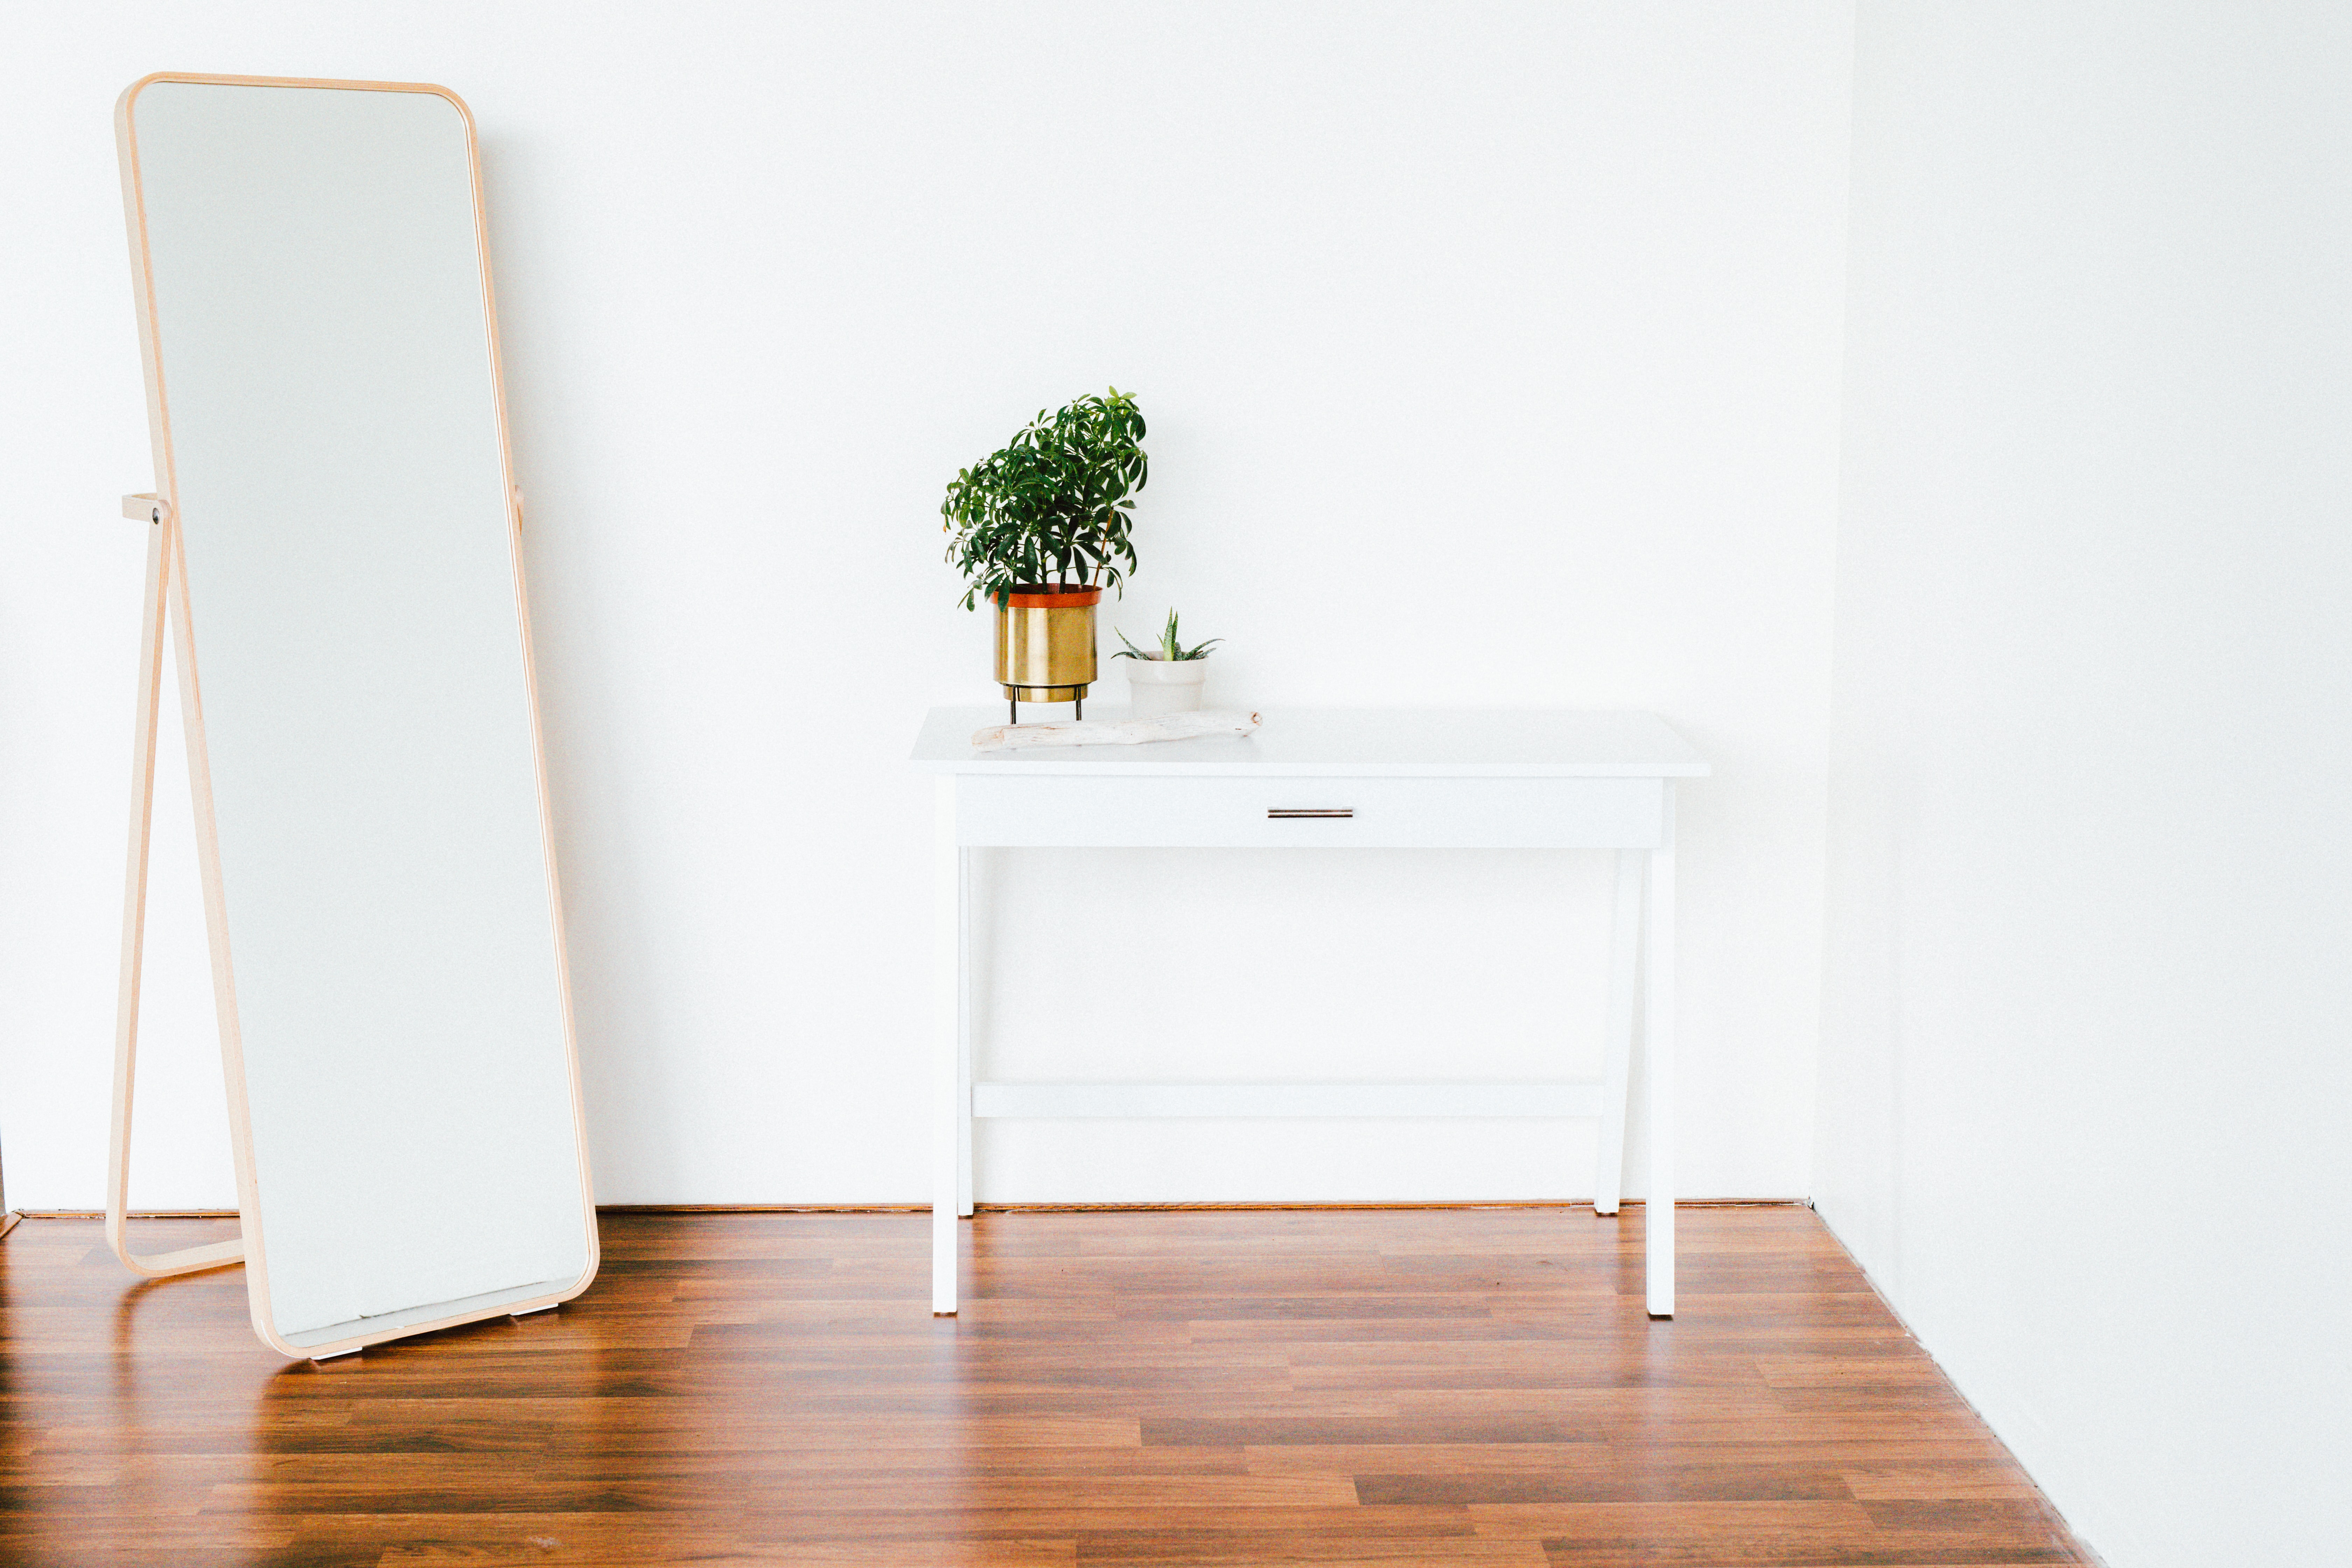 Captivating White Room Interior With Hardwood Floor With A Desk, Plant, And Full Length